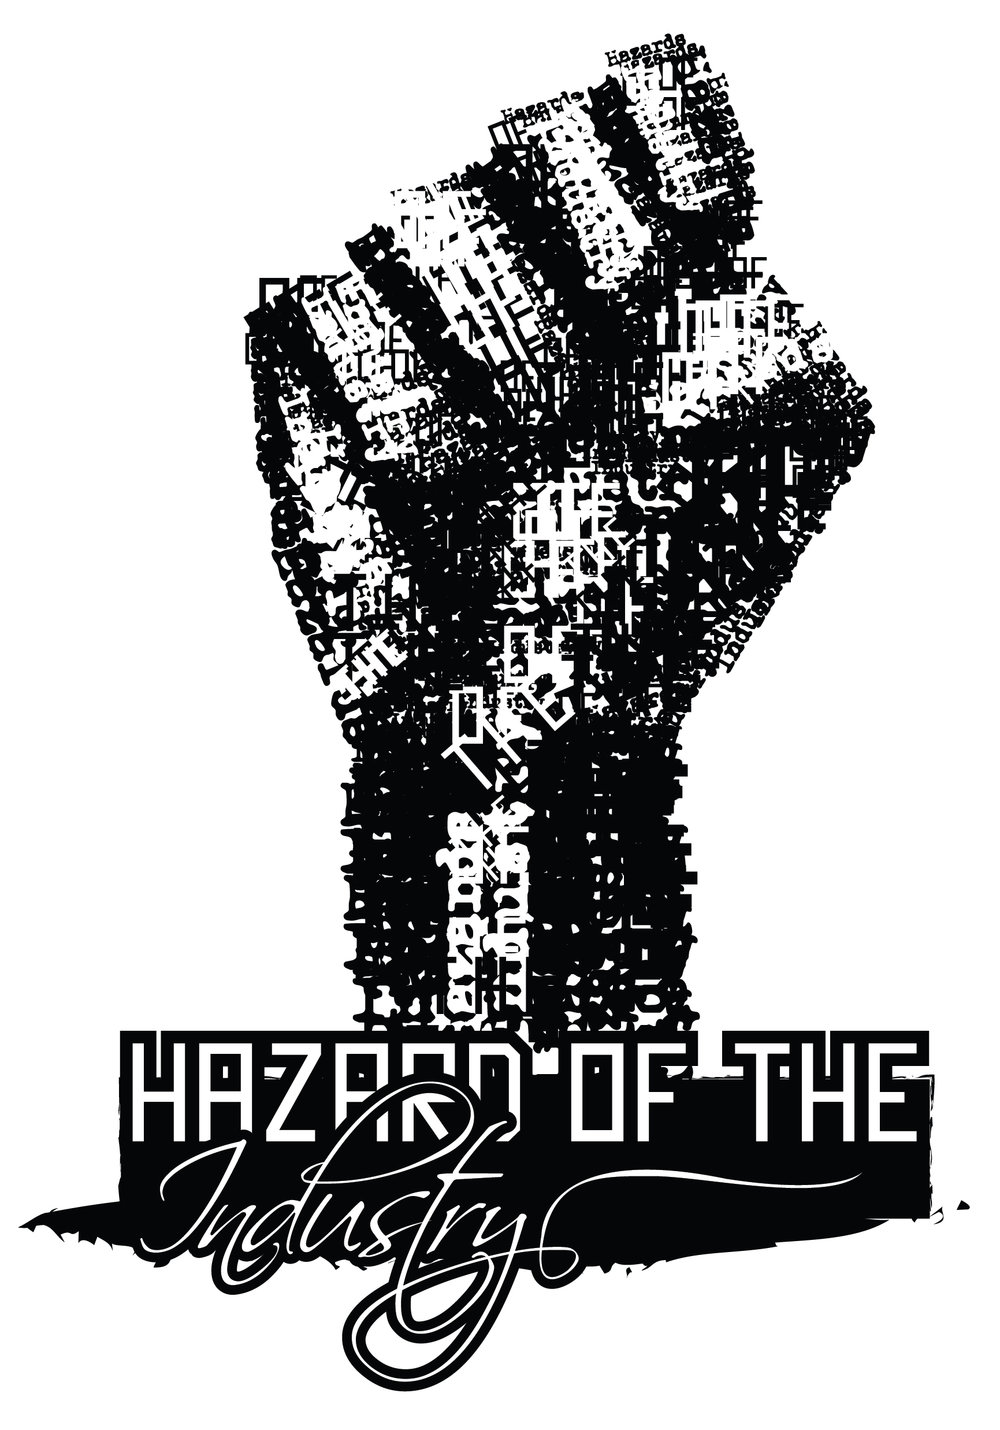 HAZARD OF THE INDUSTRY LOGO